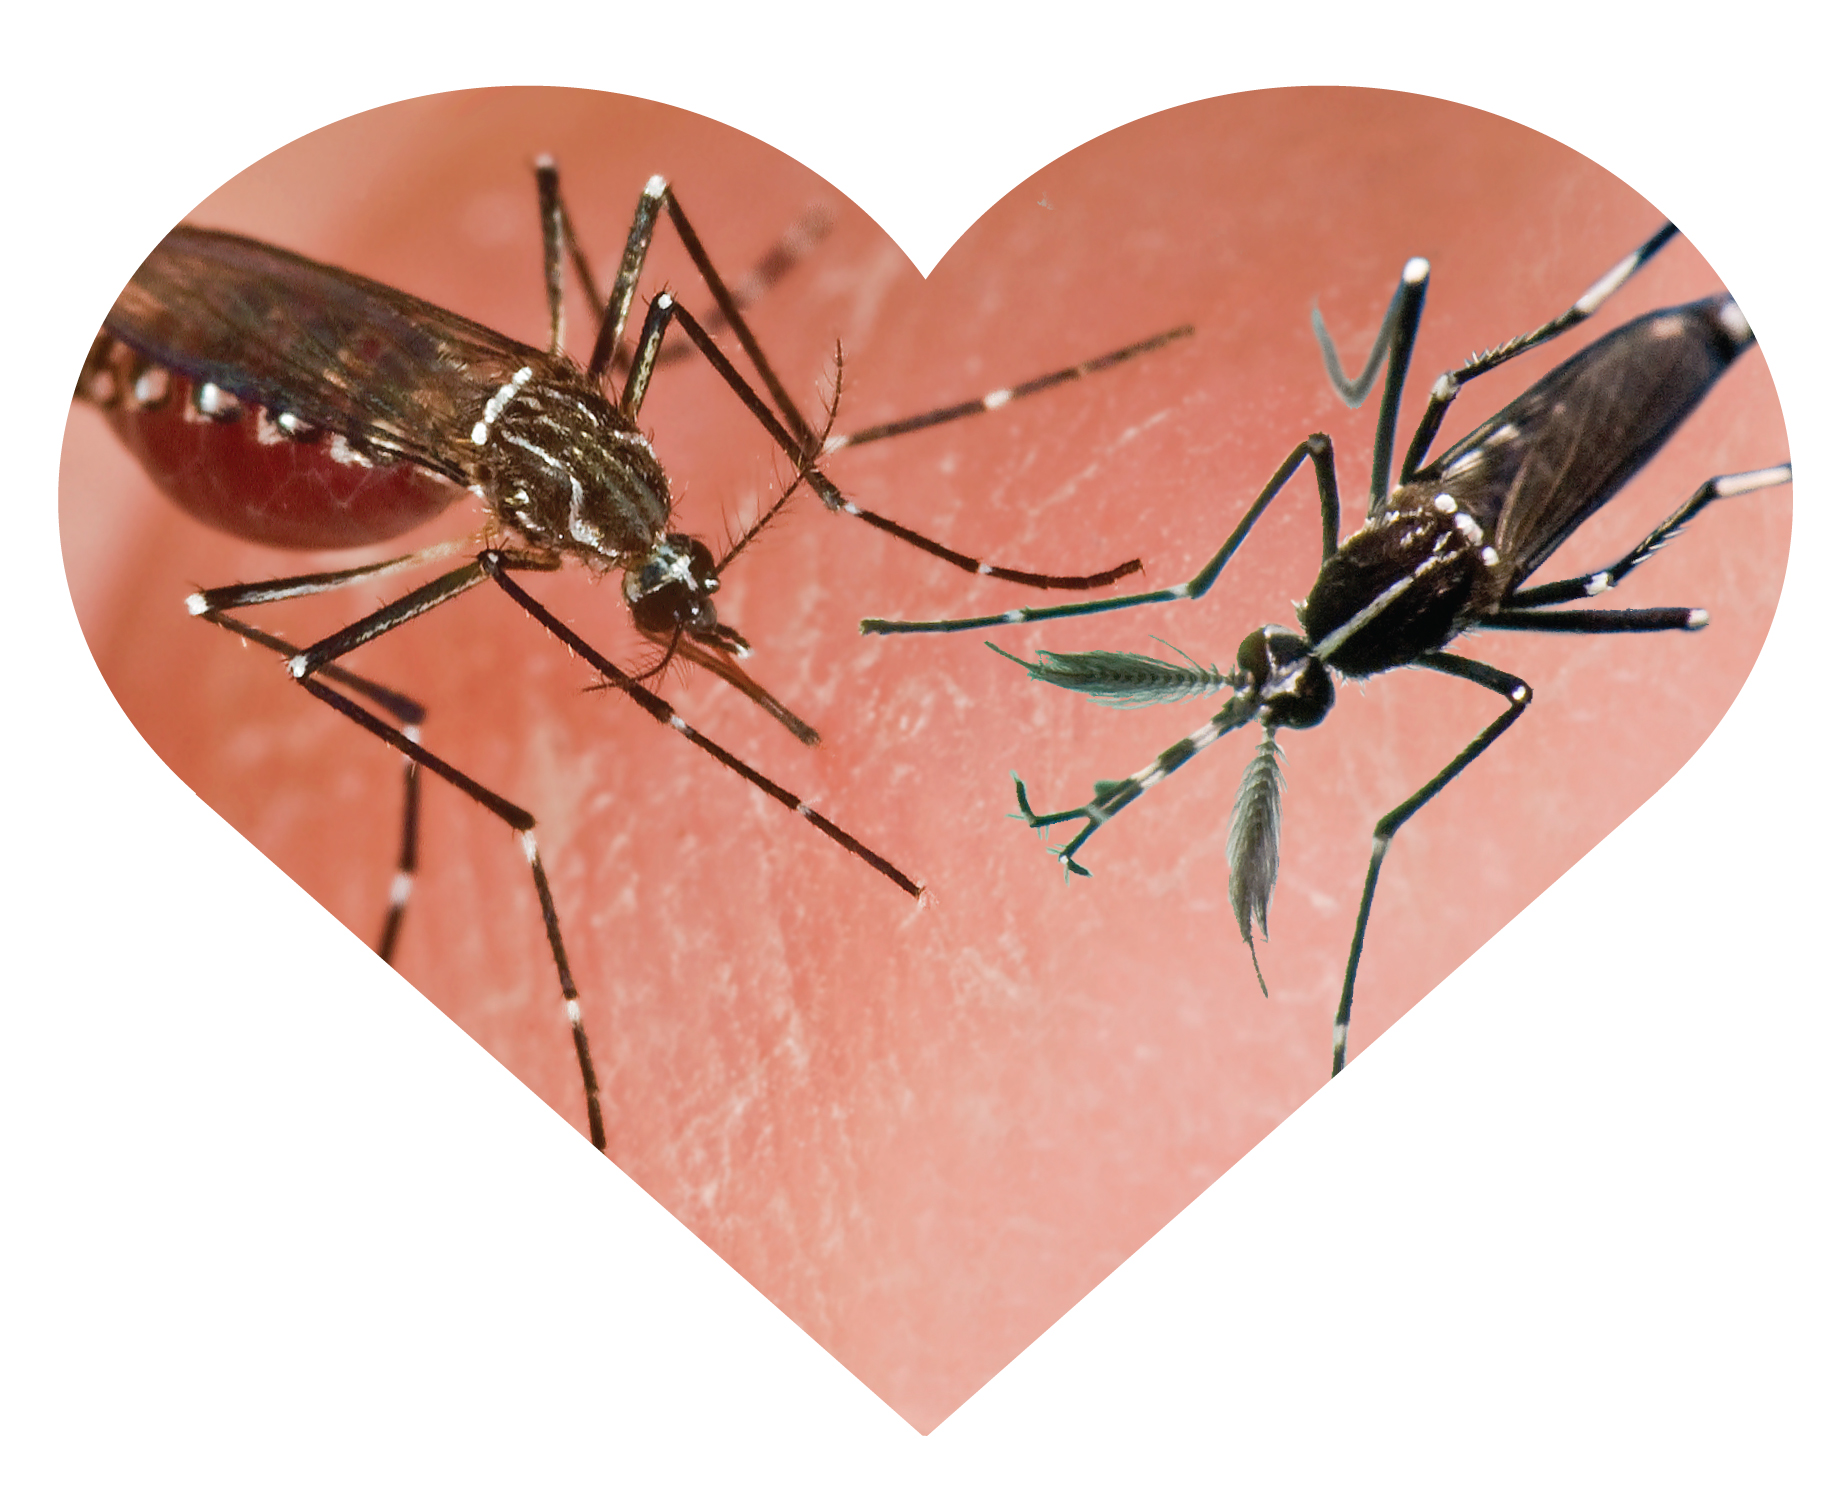 Mosquito Ecology And Disease At The Ecological Society Of -7712